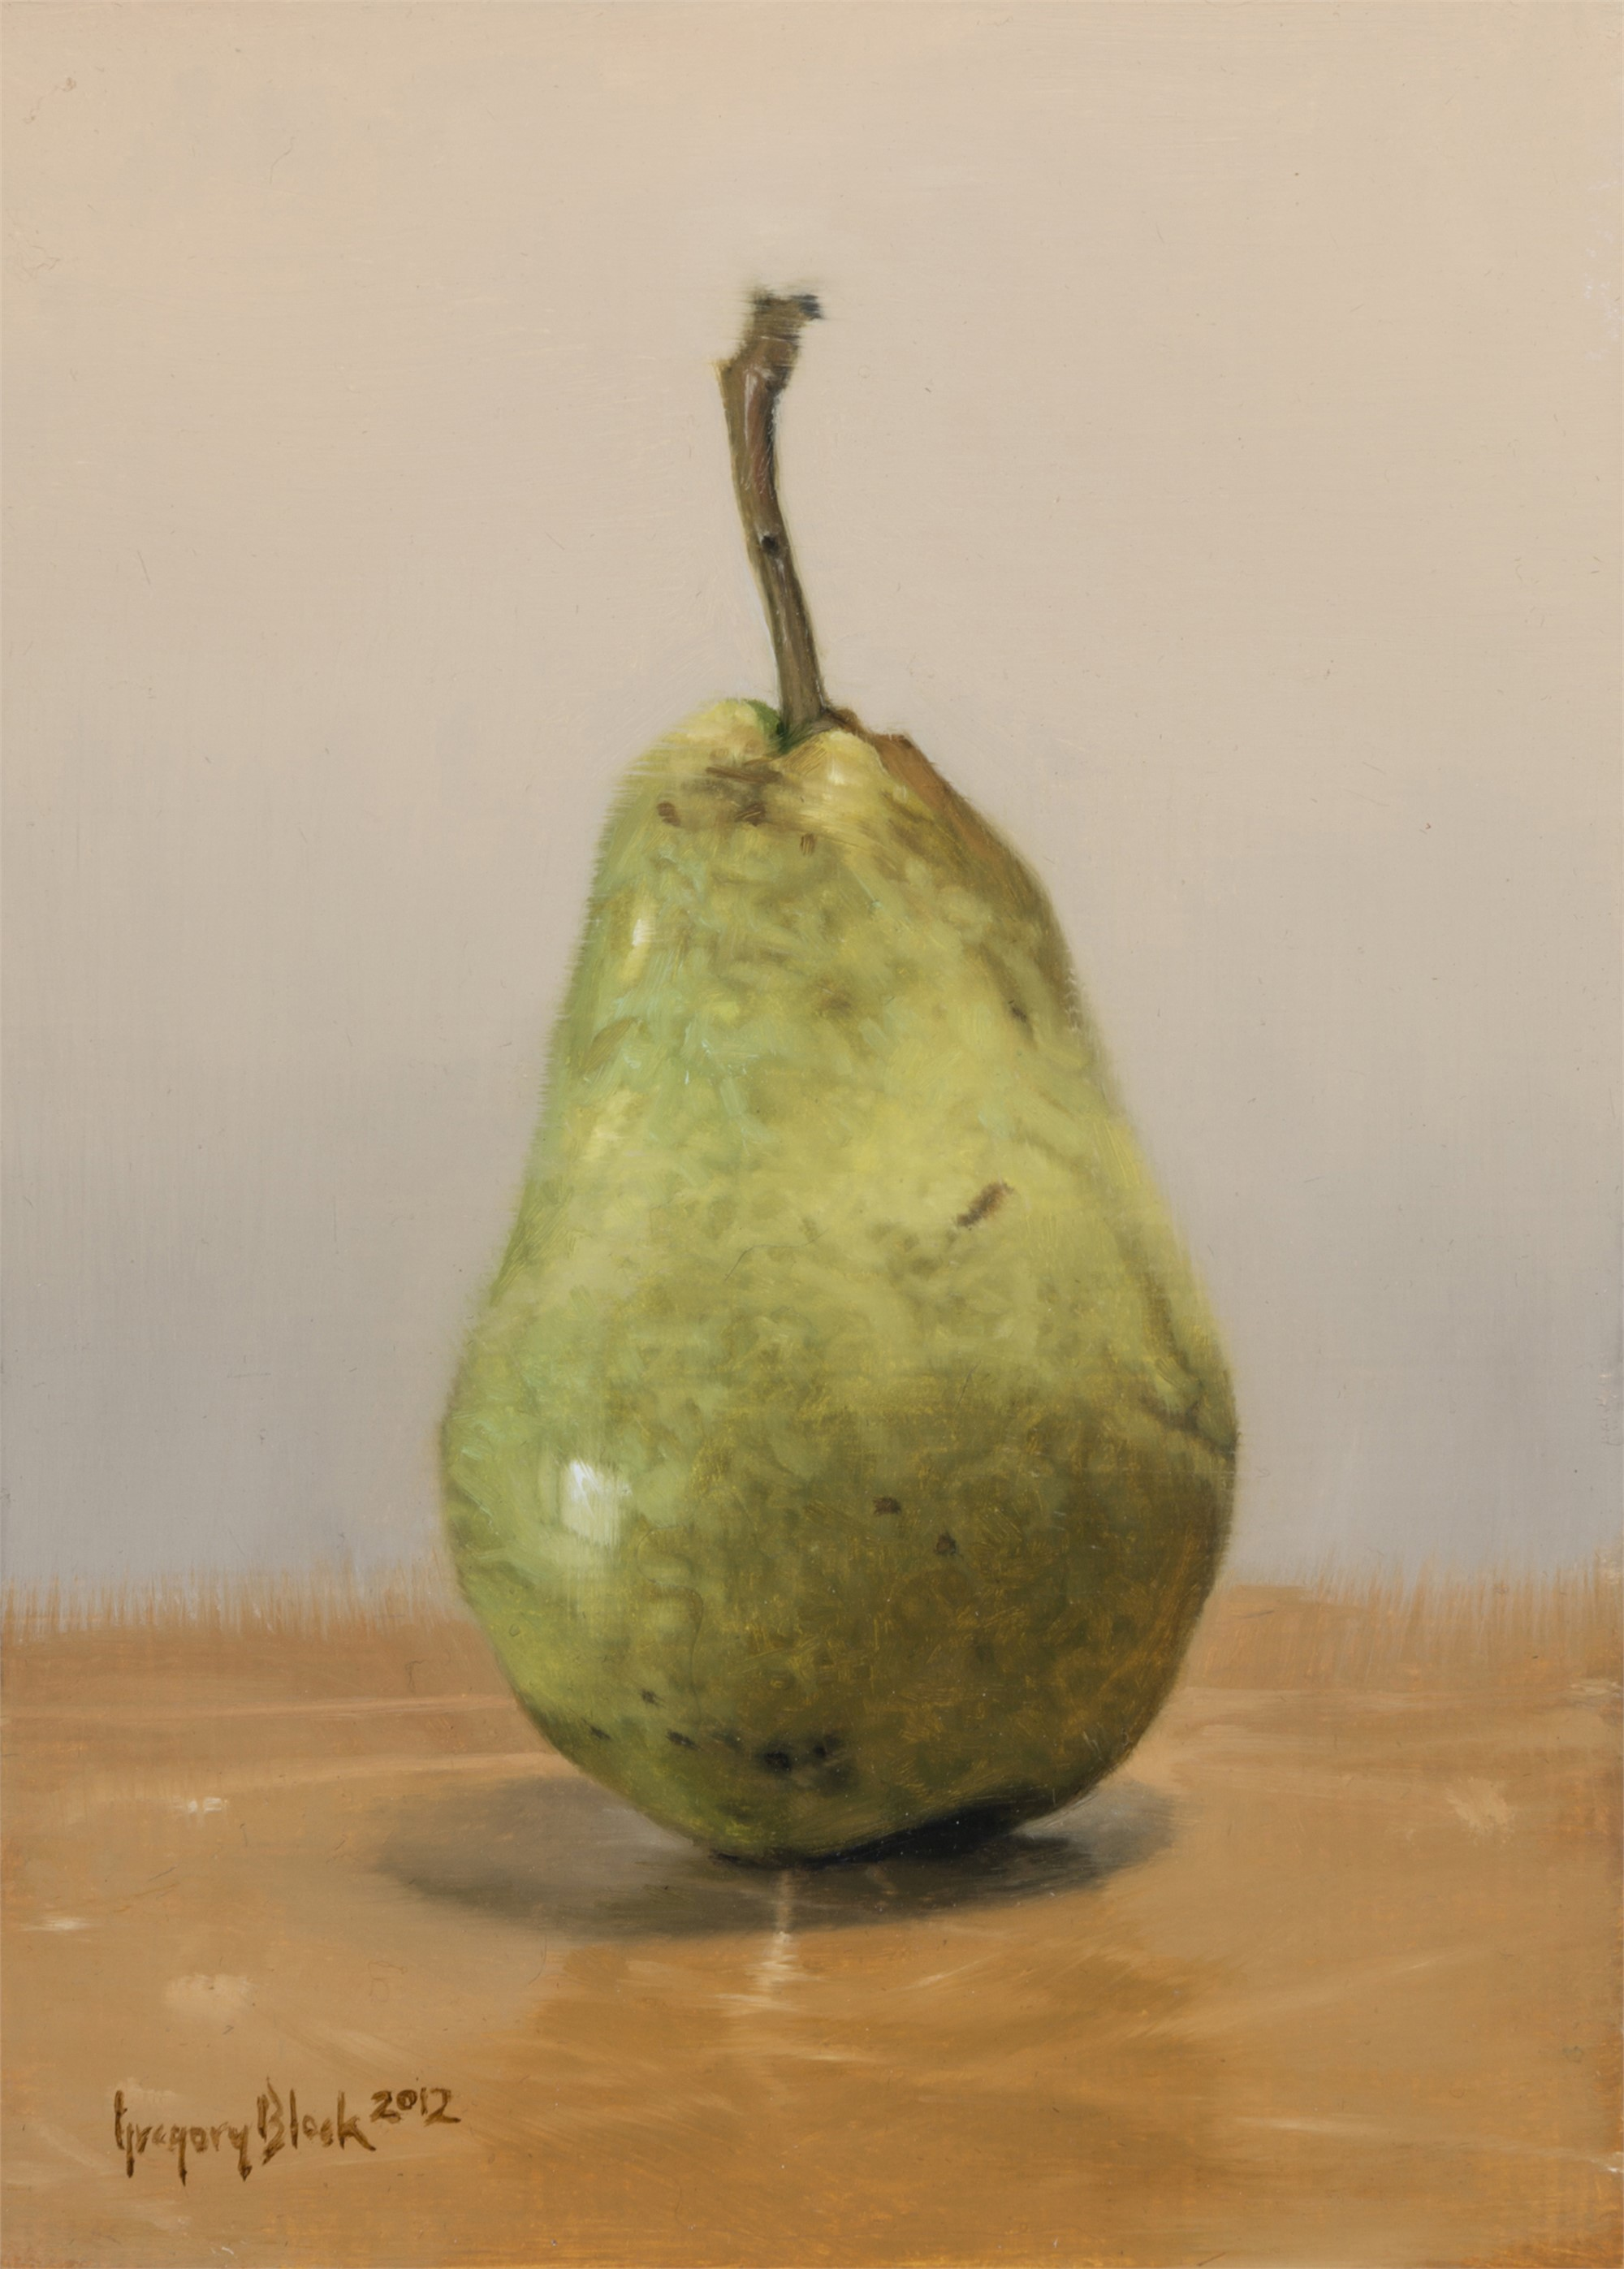 Green Pear by Gregory Block